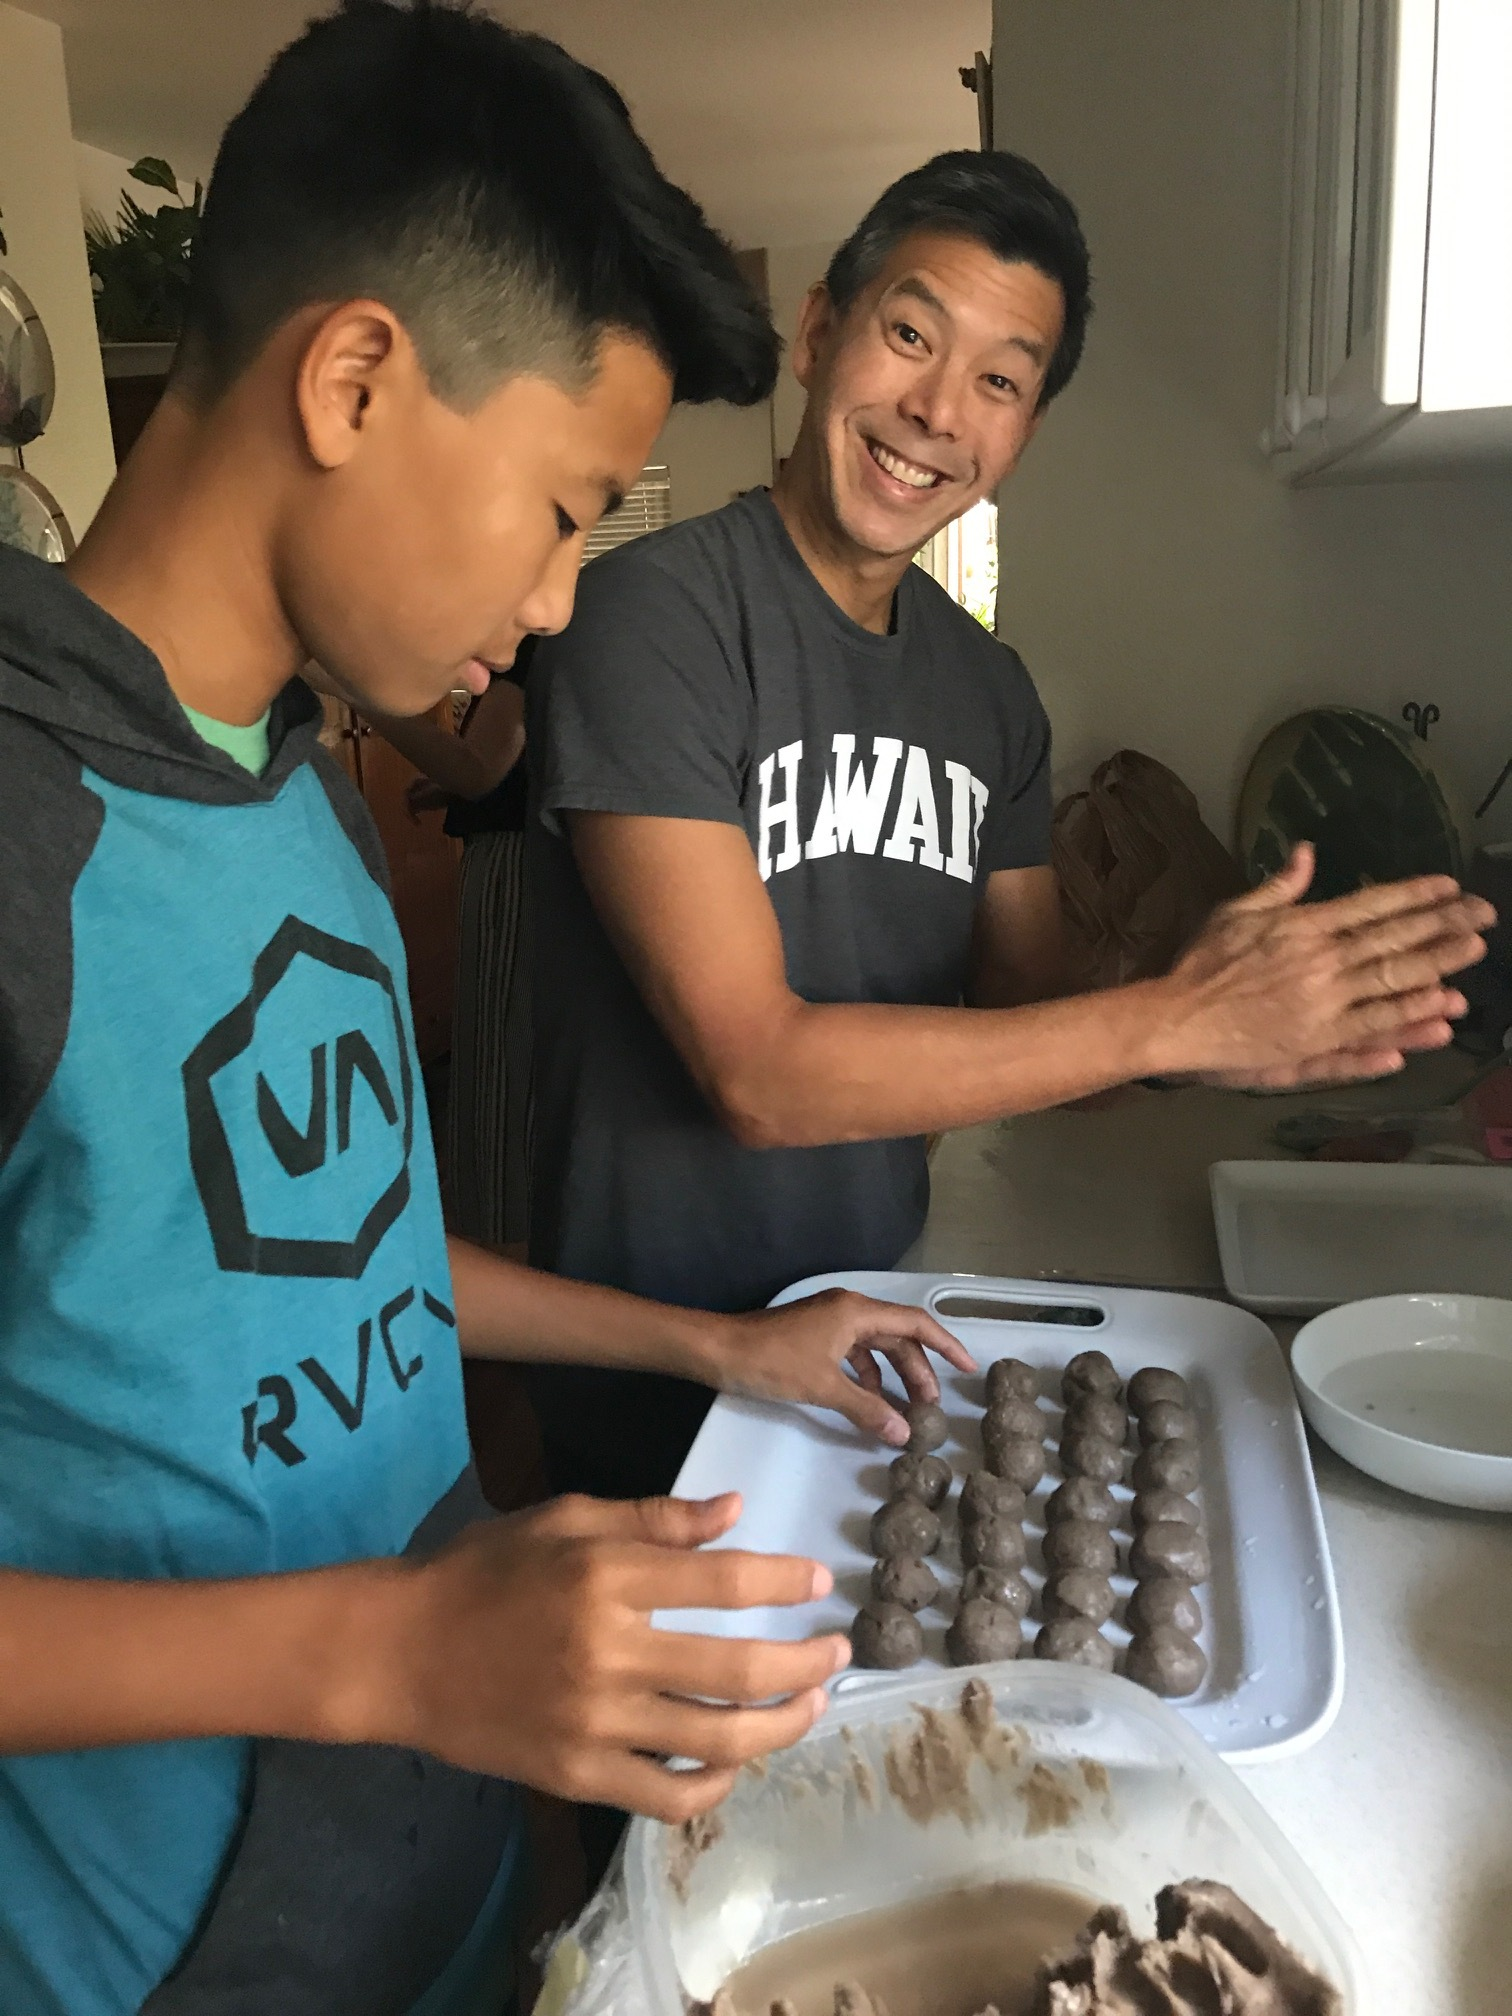 Eddie and Daniel prepping the pai'a'i